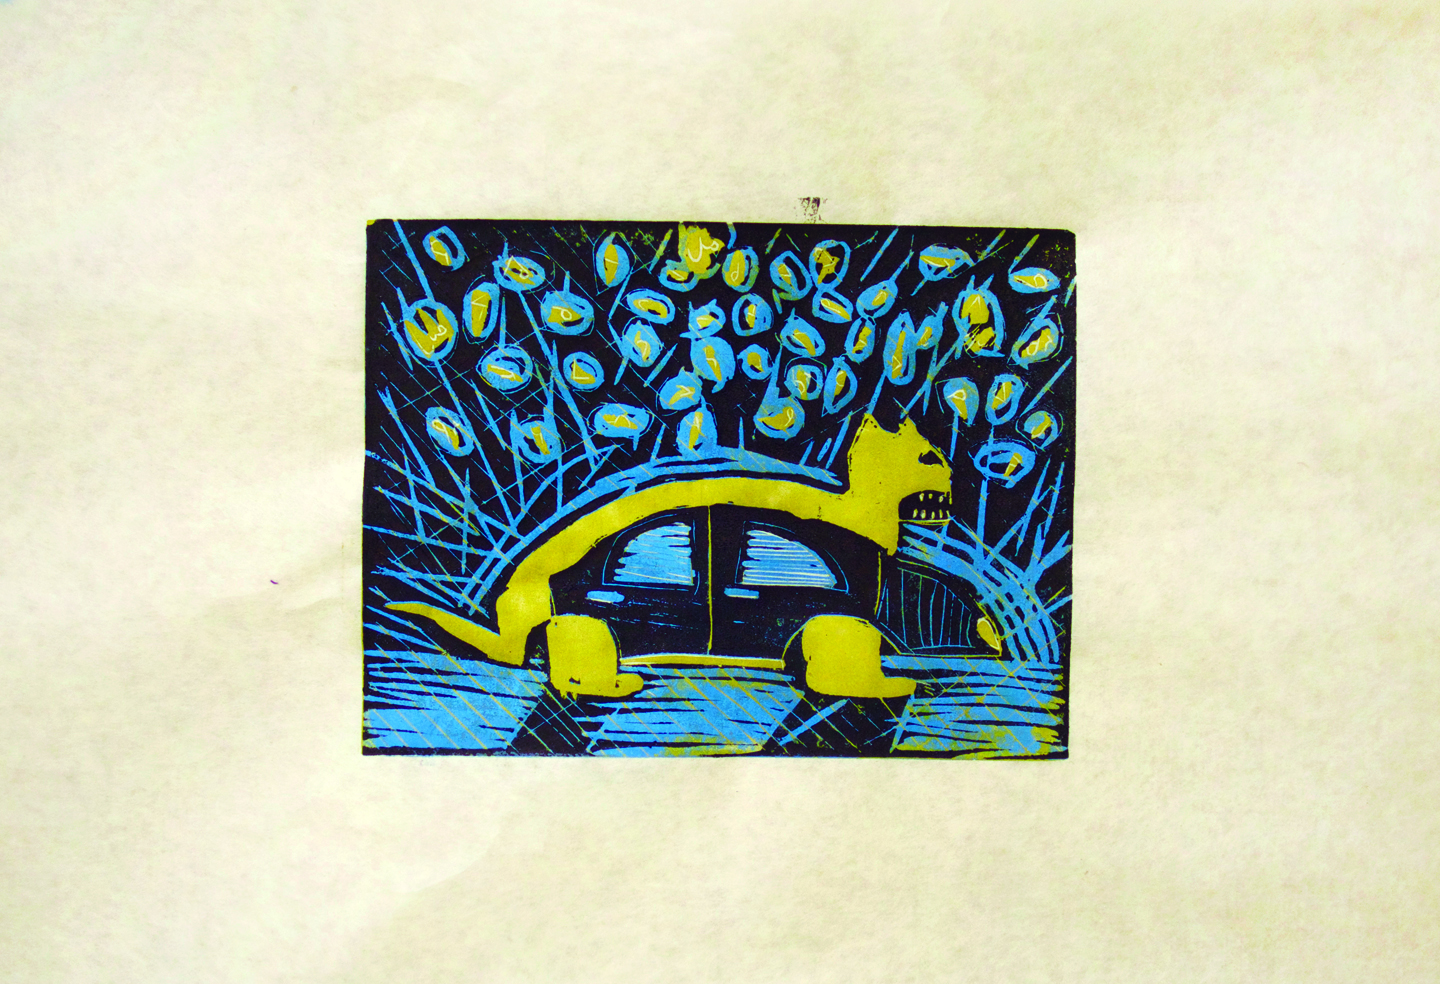 """Ruth Jaw, 12 years old, """"The Beast and the 4Door"""", 11x14"""", 3-layer linocut  """" This is a 3 color lino cut print of a beast morphing into a car. The beast is a wolf. Above the animal/car are Inuktitut syllabics which are the abc's of my language. Inuktitut is my worst subject in school but I am studying hard and really want to be bilingual. I put Inuktitut in the sky instead of stars and these syllabics float above the scene. The animal/car is walking on ice under a starry sky looking for food and gas out on the land. Does it find it? We don't know. Ther  e is a long history of printmaking in Cape Dorset that has lasted almost 60 years and this is my first lino cut print."""""""